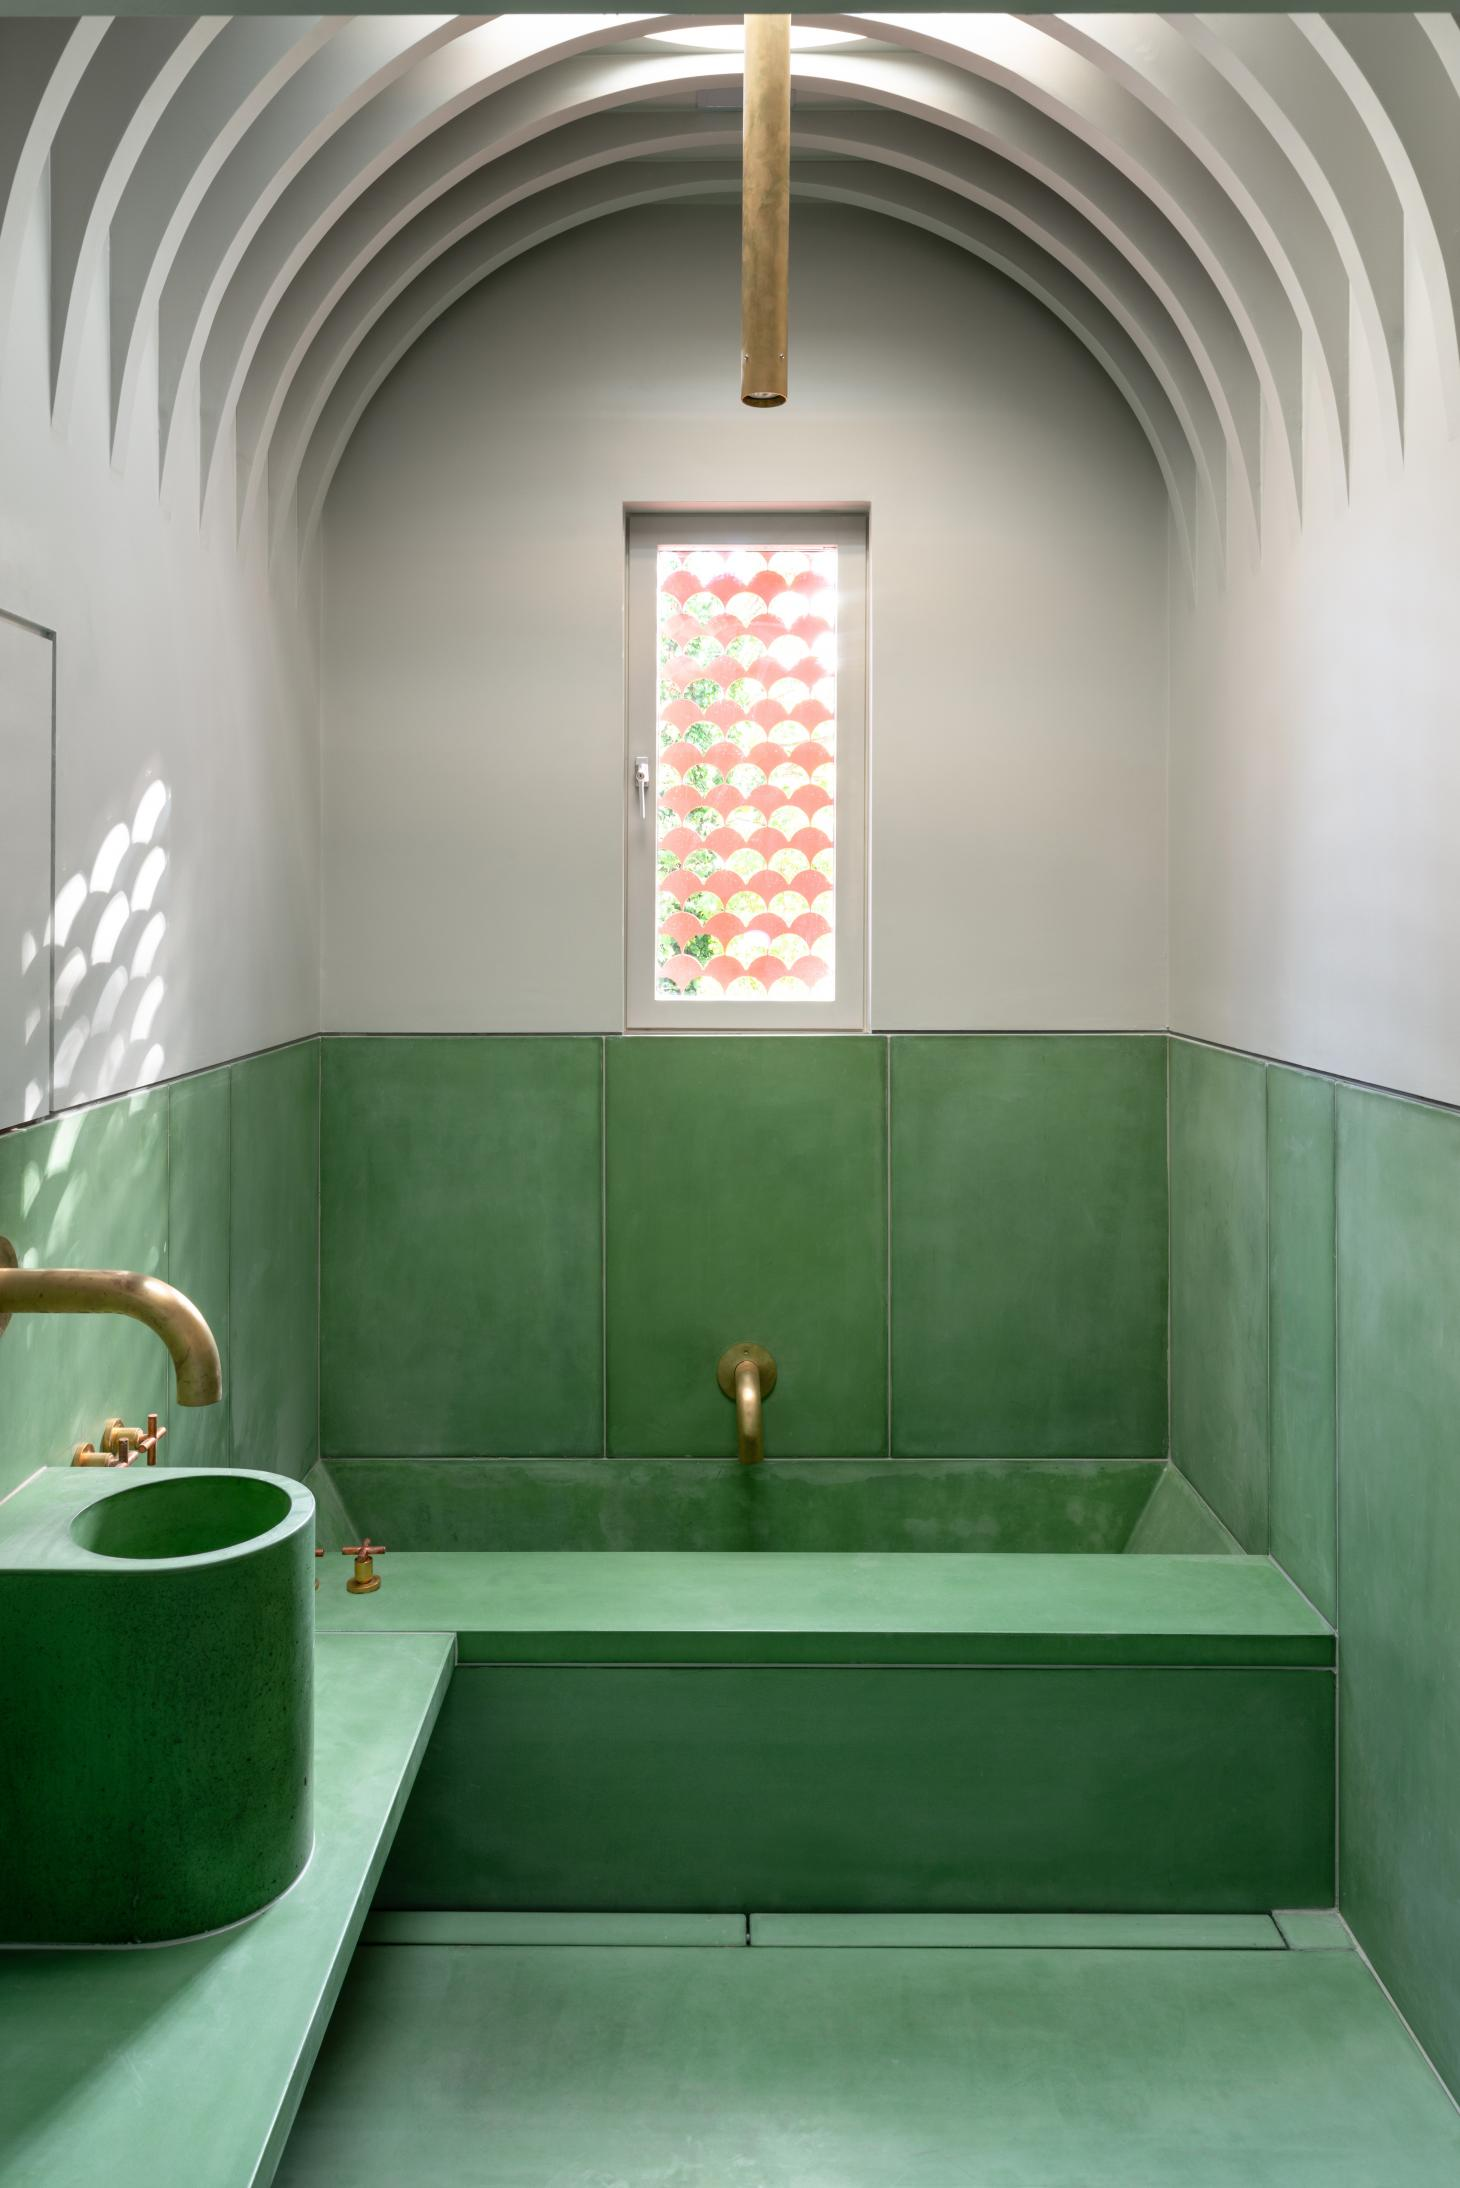 the green sculptural bathroom at House Recast in London